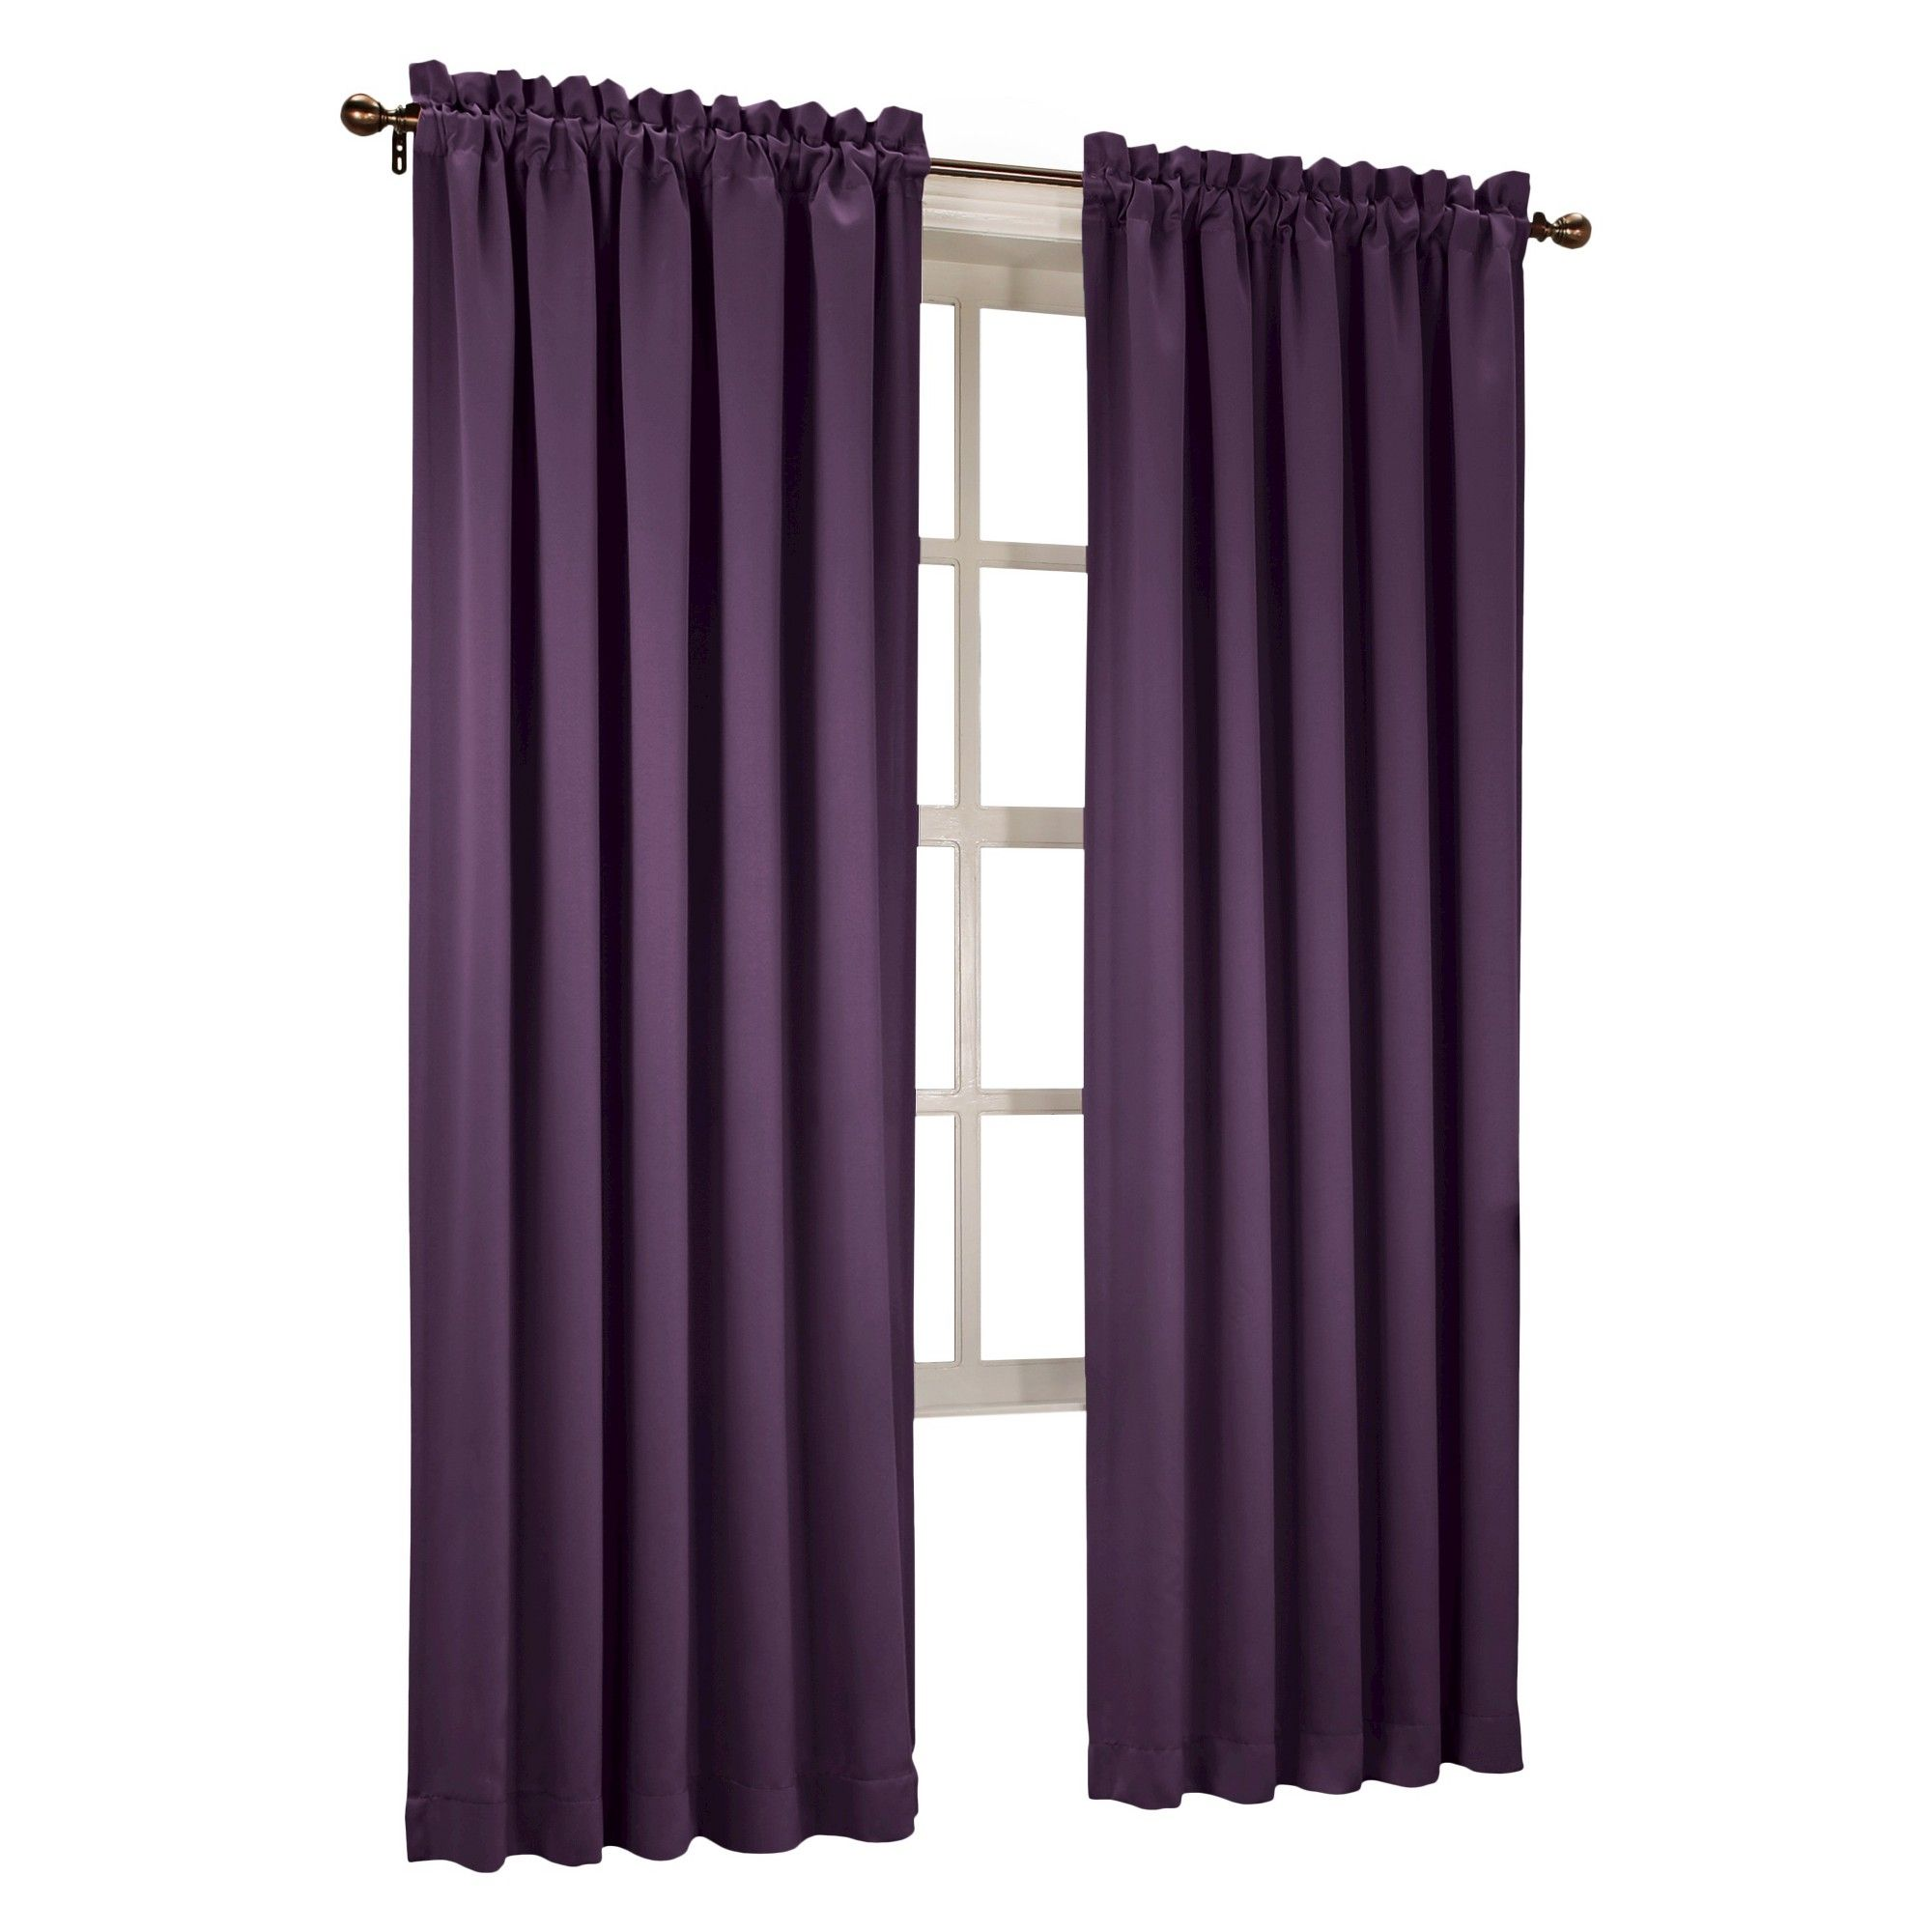 mainstays curtains bedroom inspirational for girls of horses pretty cool bemalas purple com curtain panel walmart drapes or